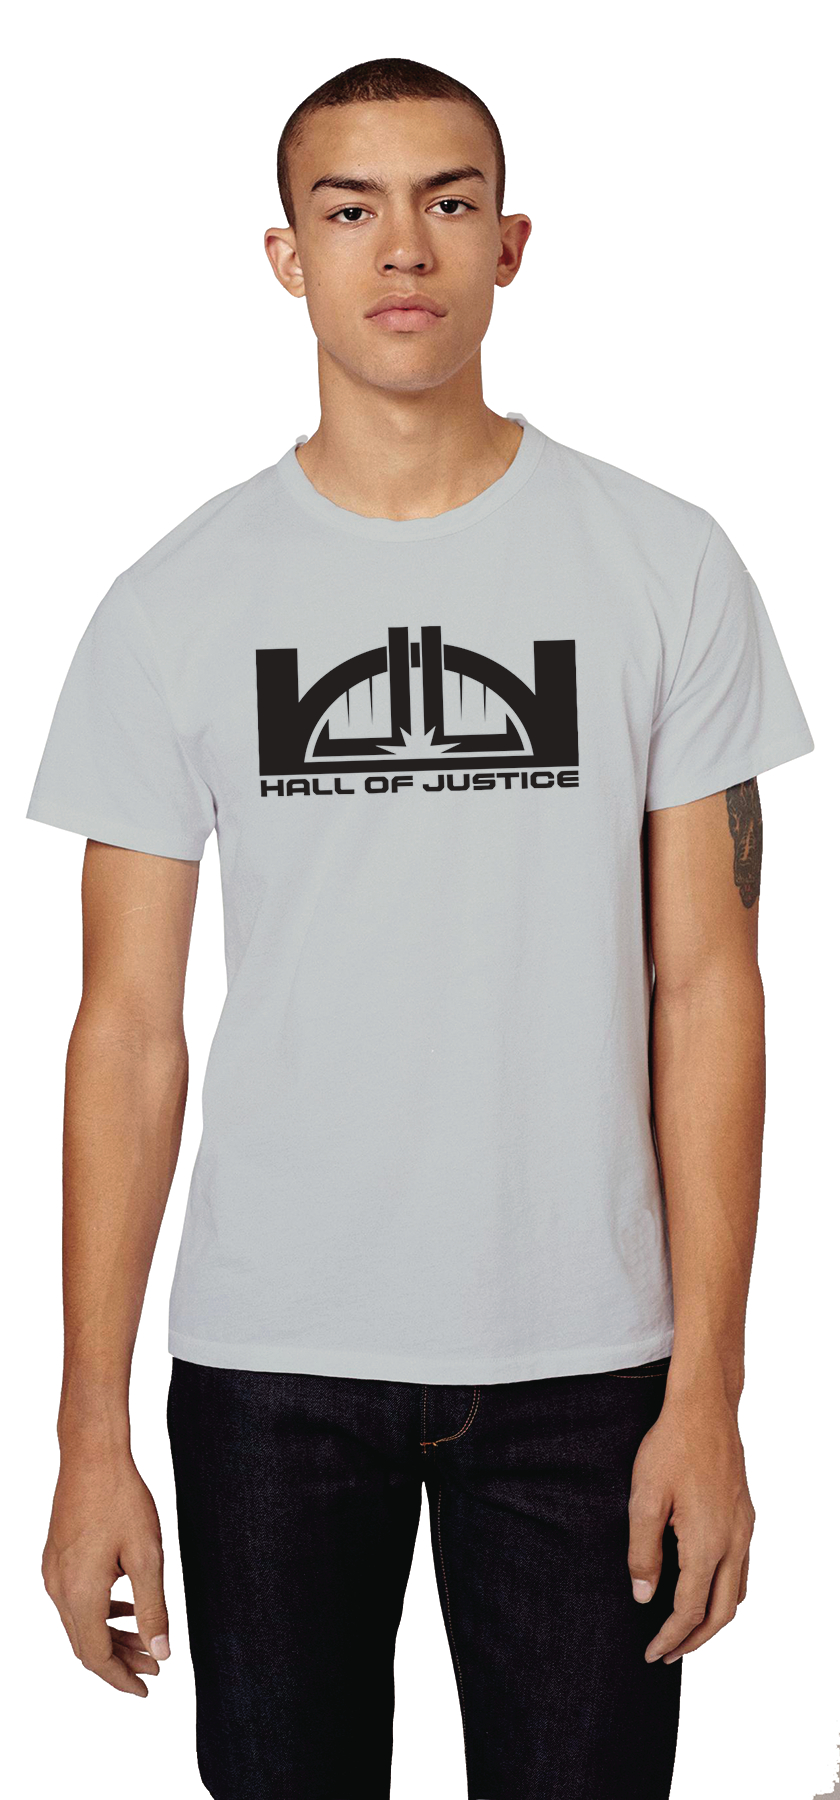 DC HALL OF JUSTICE STAFF T/S XL